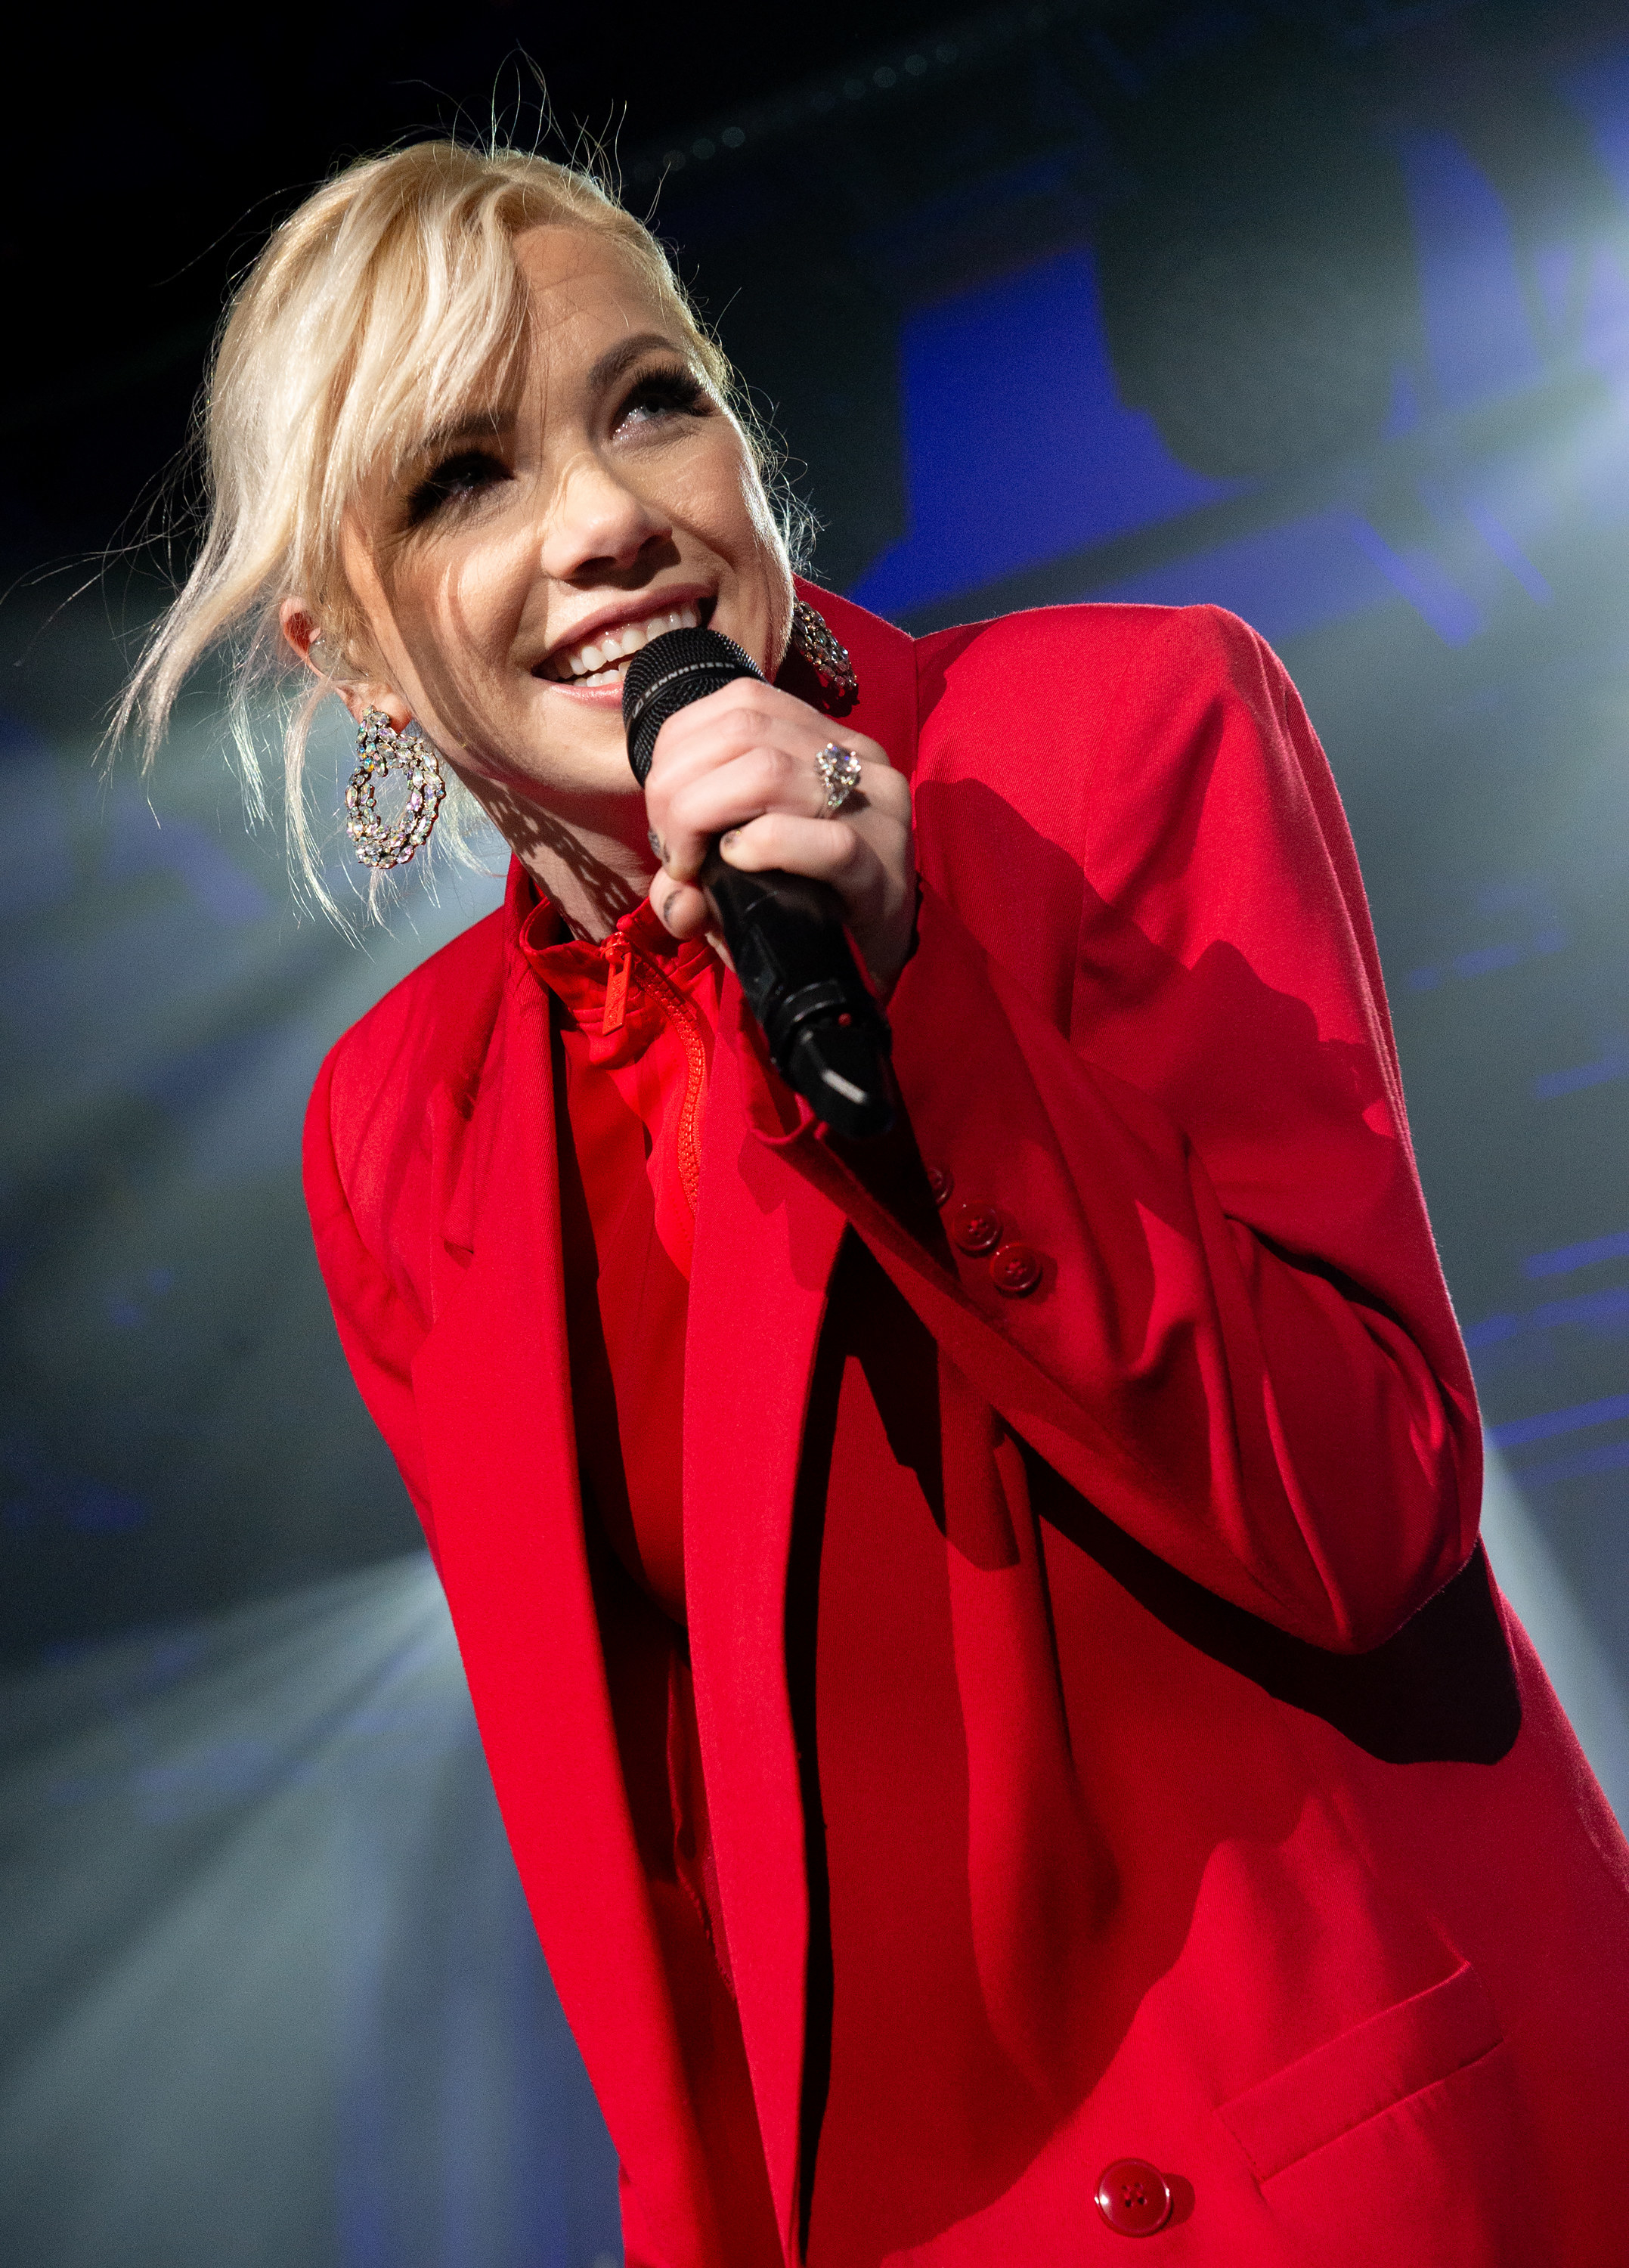 Carly Rae on stage signing wearing all red